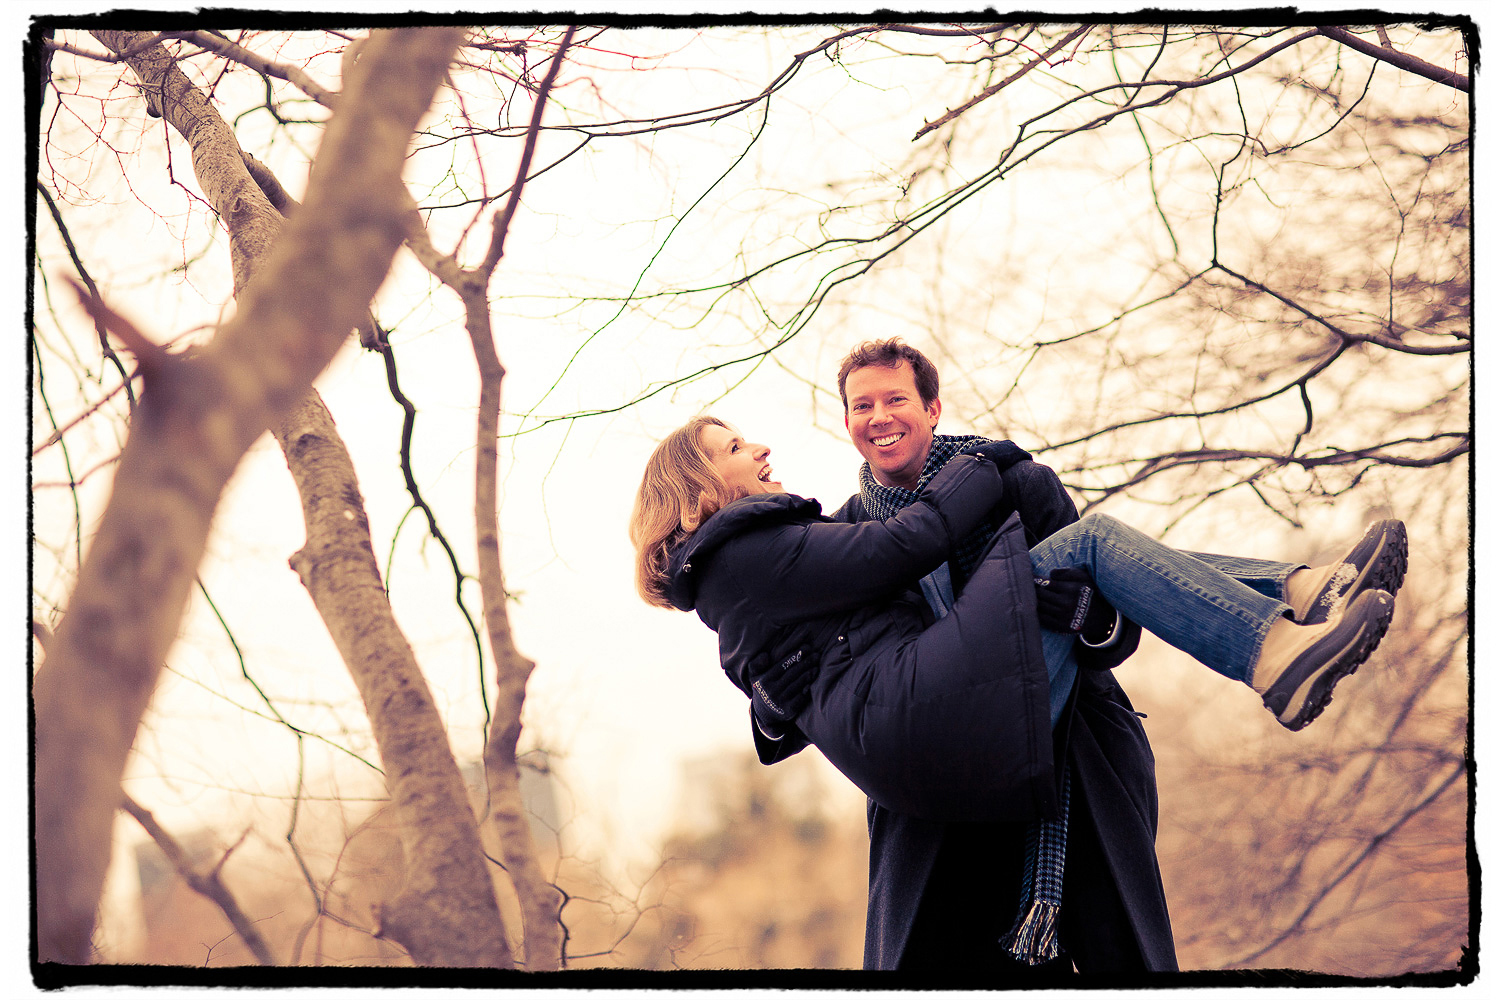 Engagement Portrait: Doug practices his threshold carrying in Central Park mid-winter.